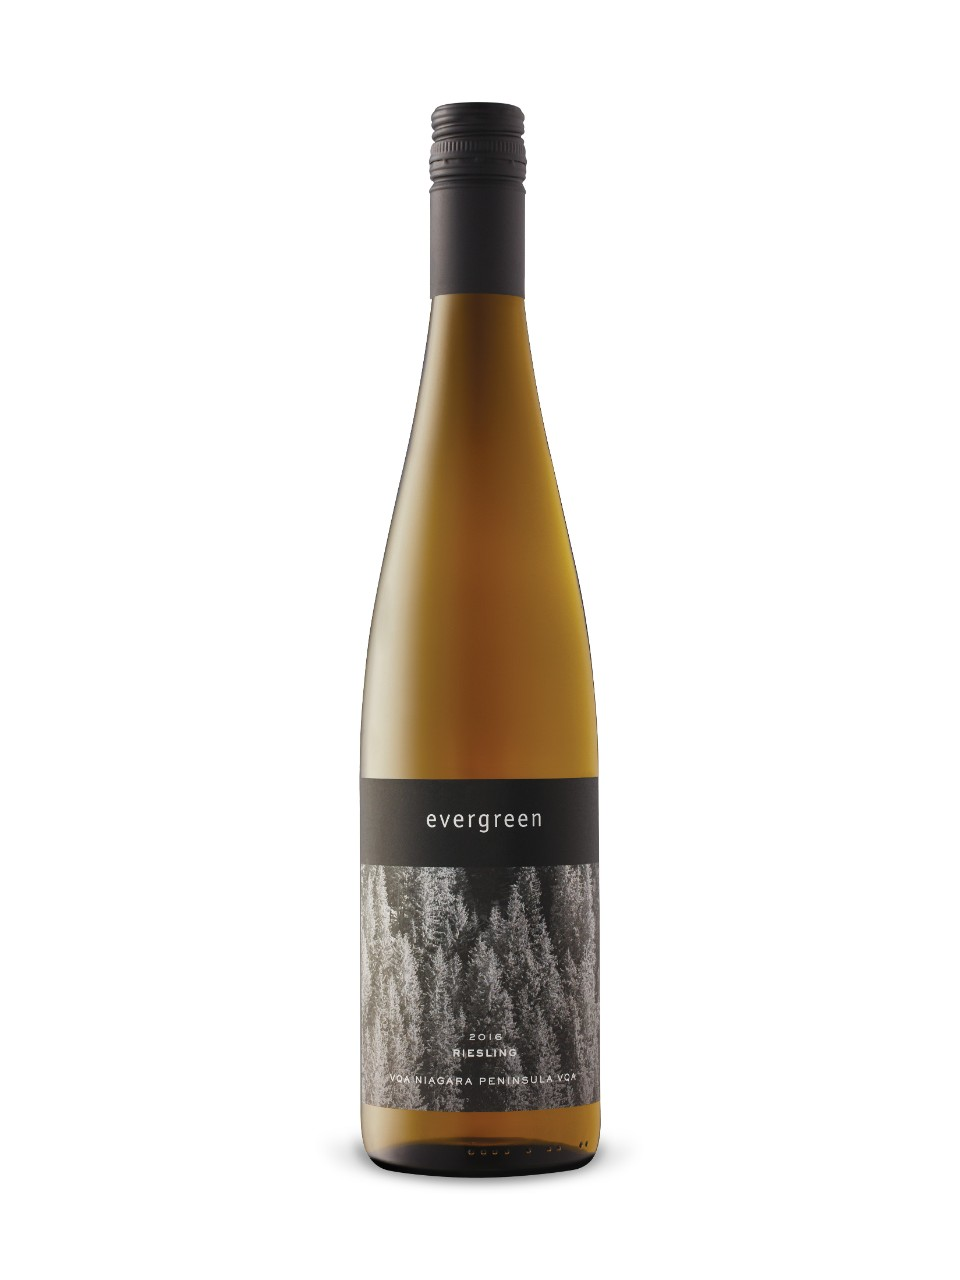 Riesling Evergreen Stratus 2016